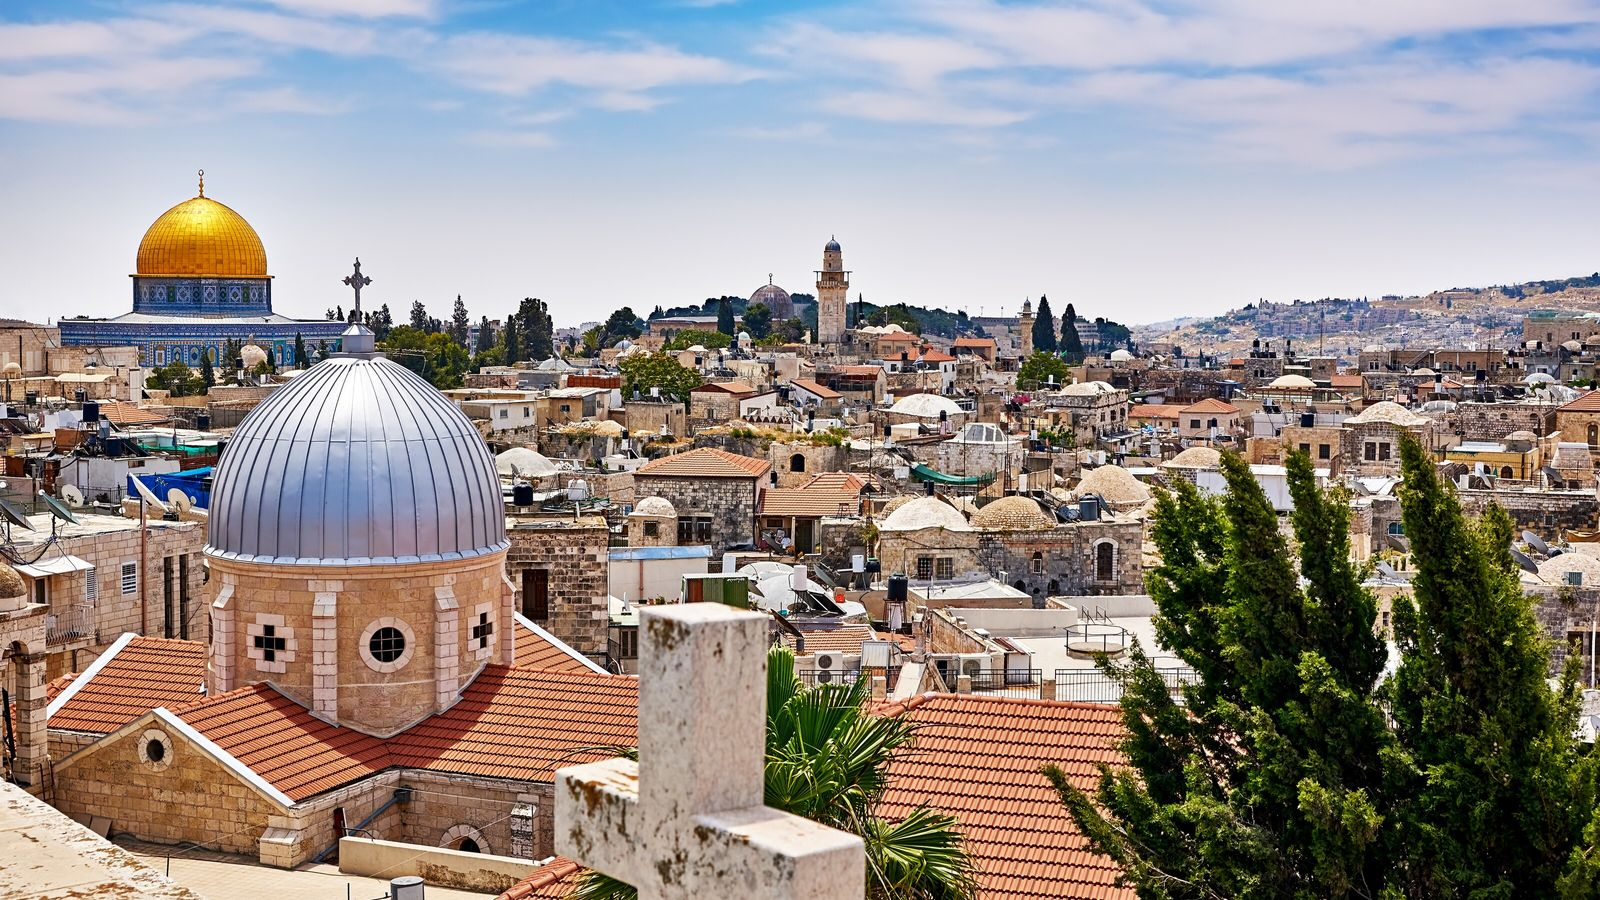 Panoramic view of the Old Cityneighbourhood in Jerusalem